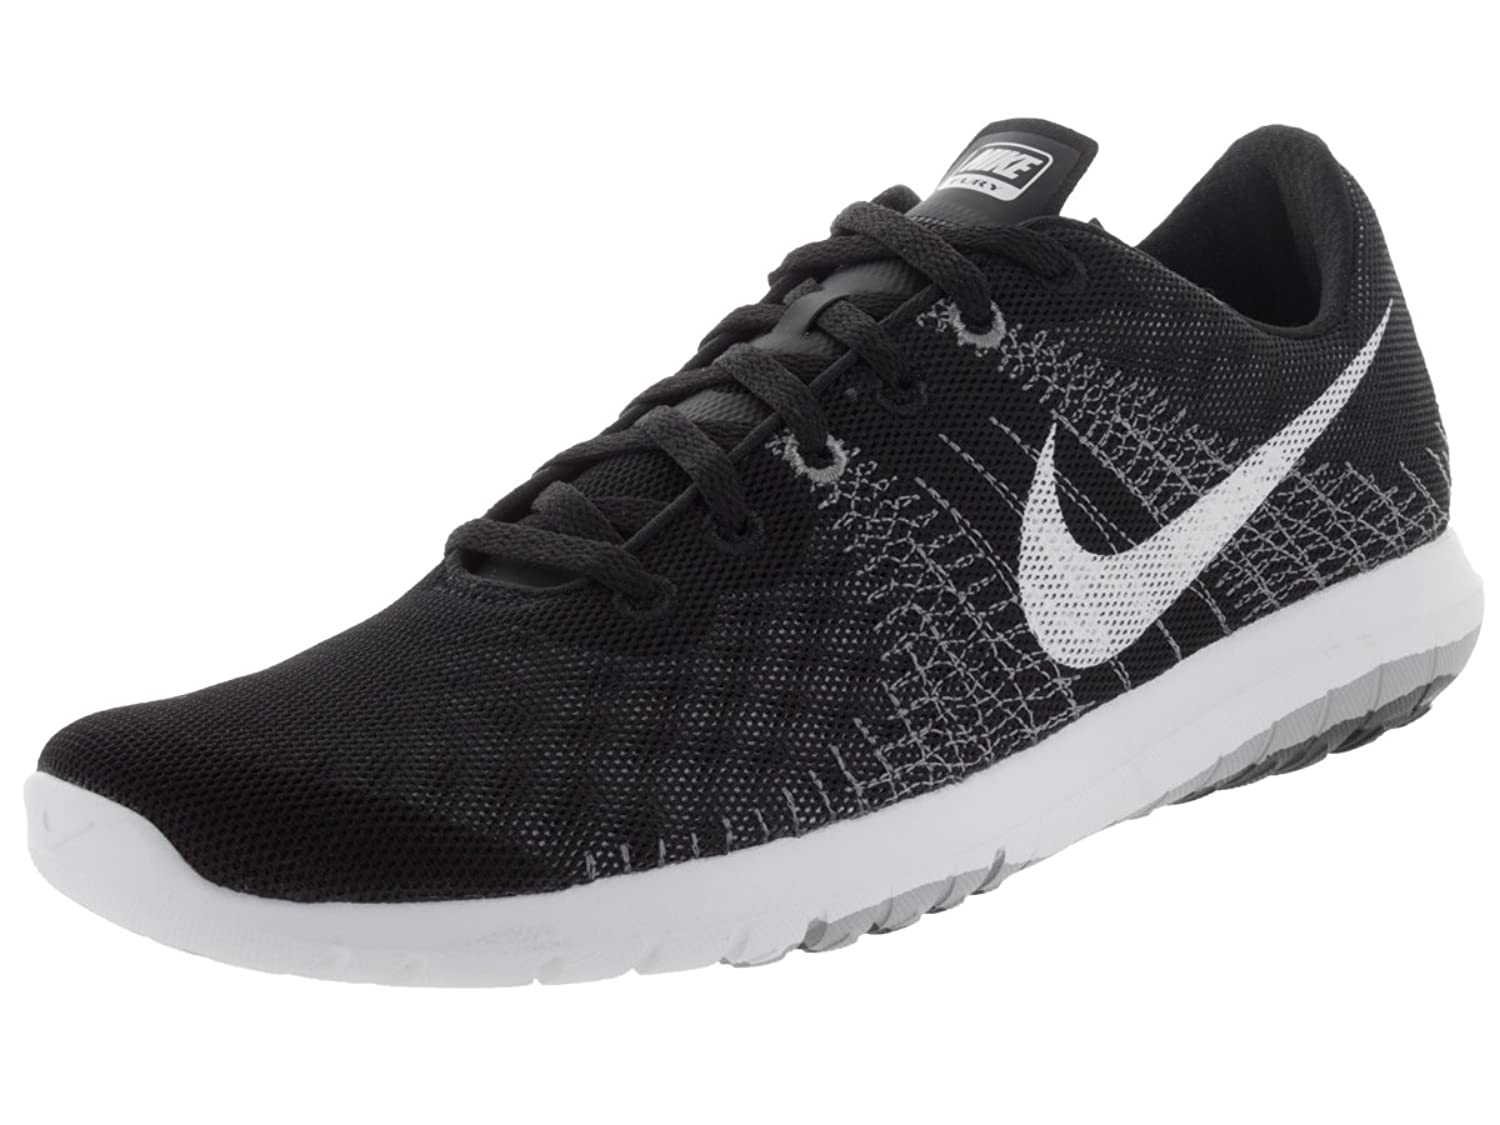 Cheap Nike Trainers & Shoes Cheap Nike Shoes for Men, Women & Kids schuh